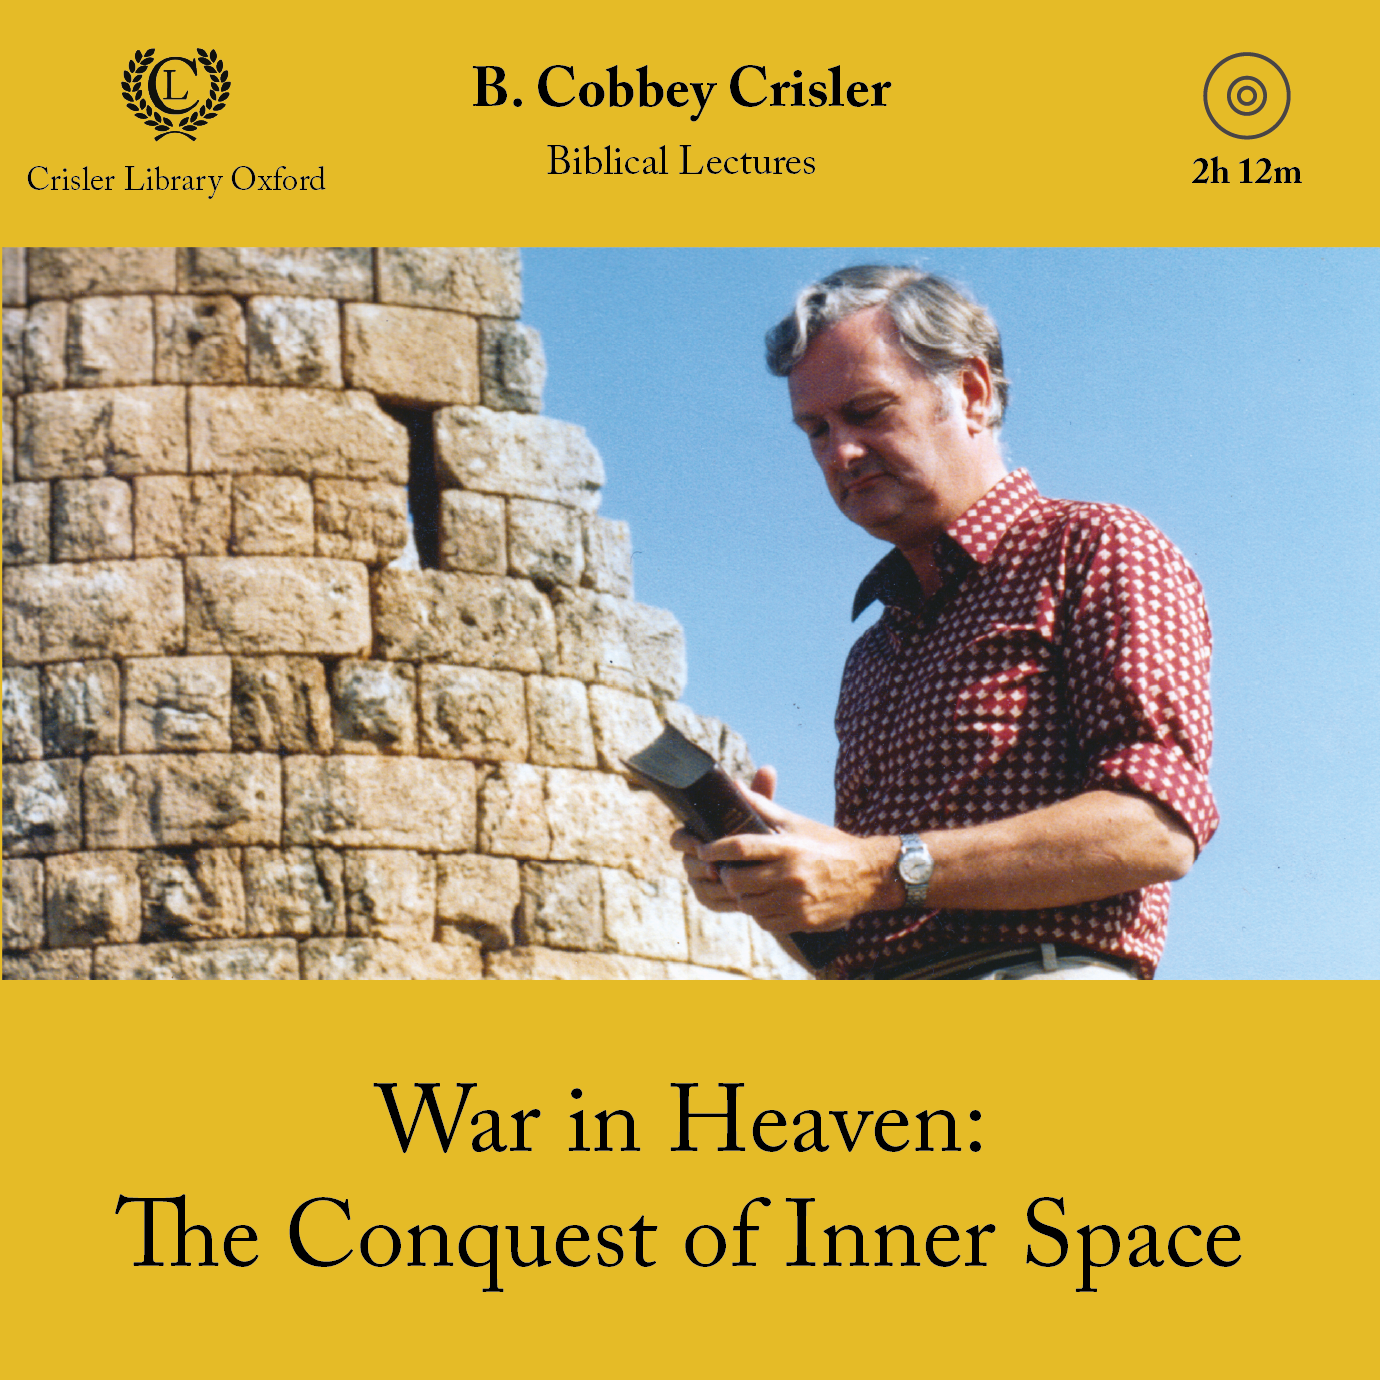 War in Heaven: The Conquest of Inner Space